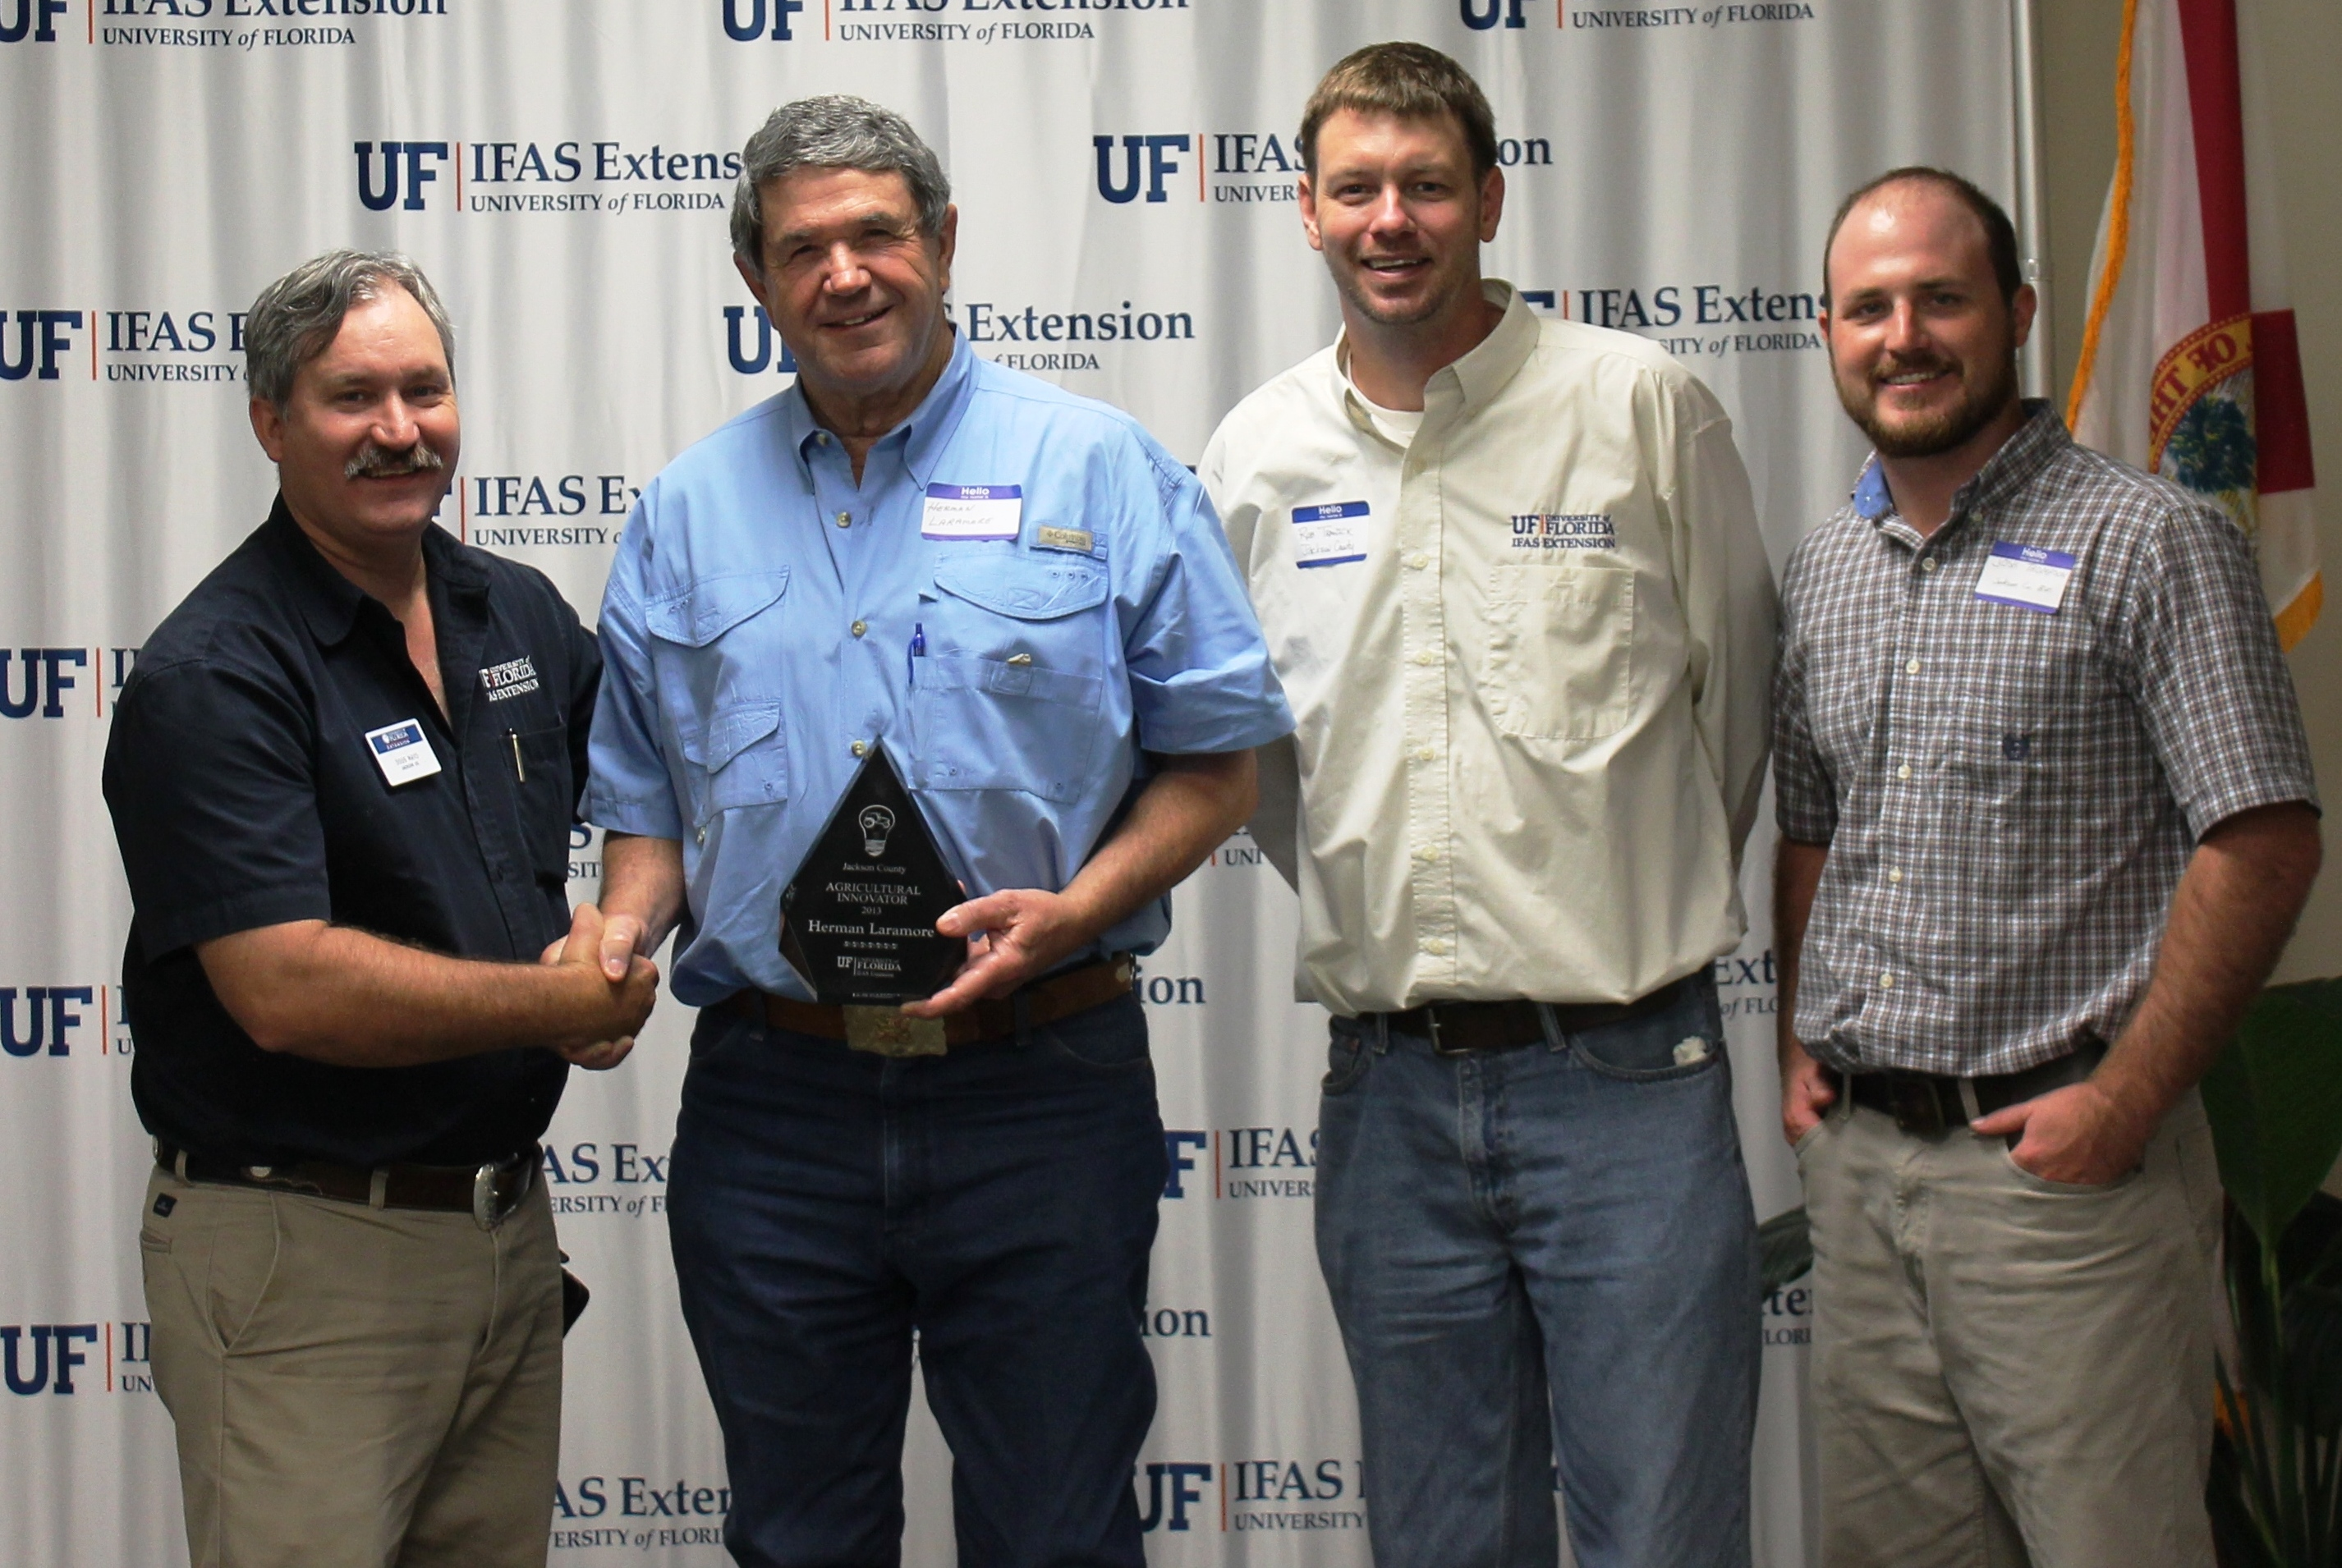 (From Left to Right) Jackson County Extension Director Doug Mayo, Herman Laramore, and Rob Trawick and Josh Thompson of Jackson County Extension